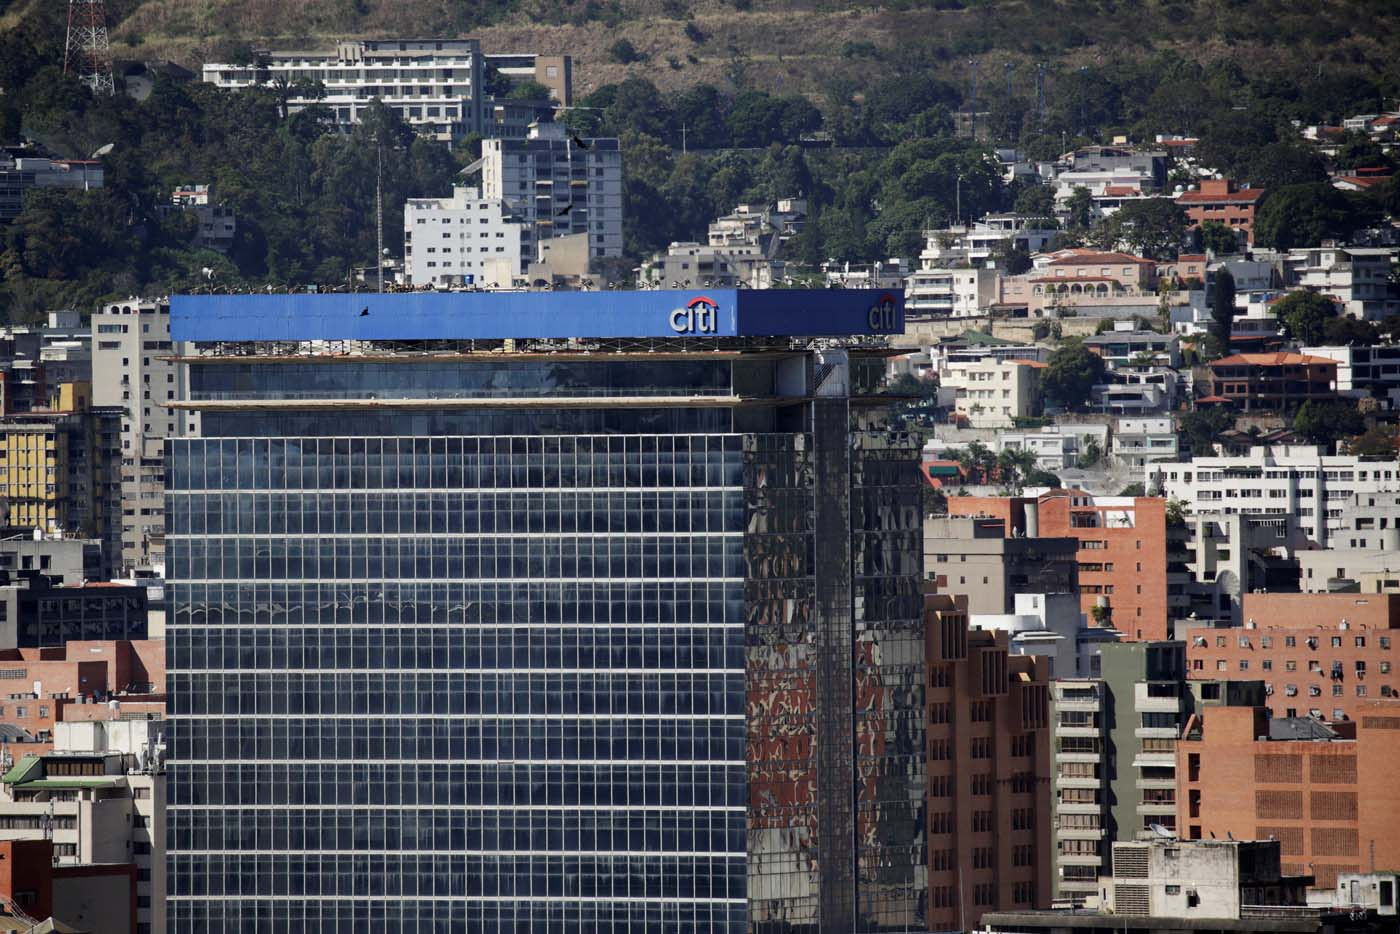 The logo of Citi is seen atop a building in Caracas, Venezuela February 8, 2017. Picture taken February 8, 2017. REUTERS/Marco Bello To match Exclusive VENEZUELA-BANKS/